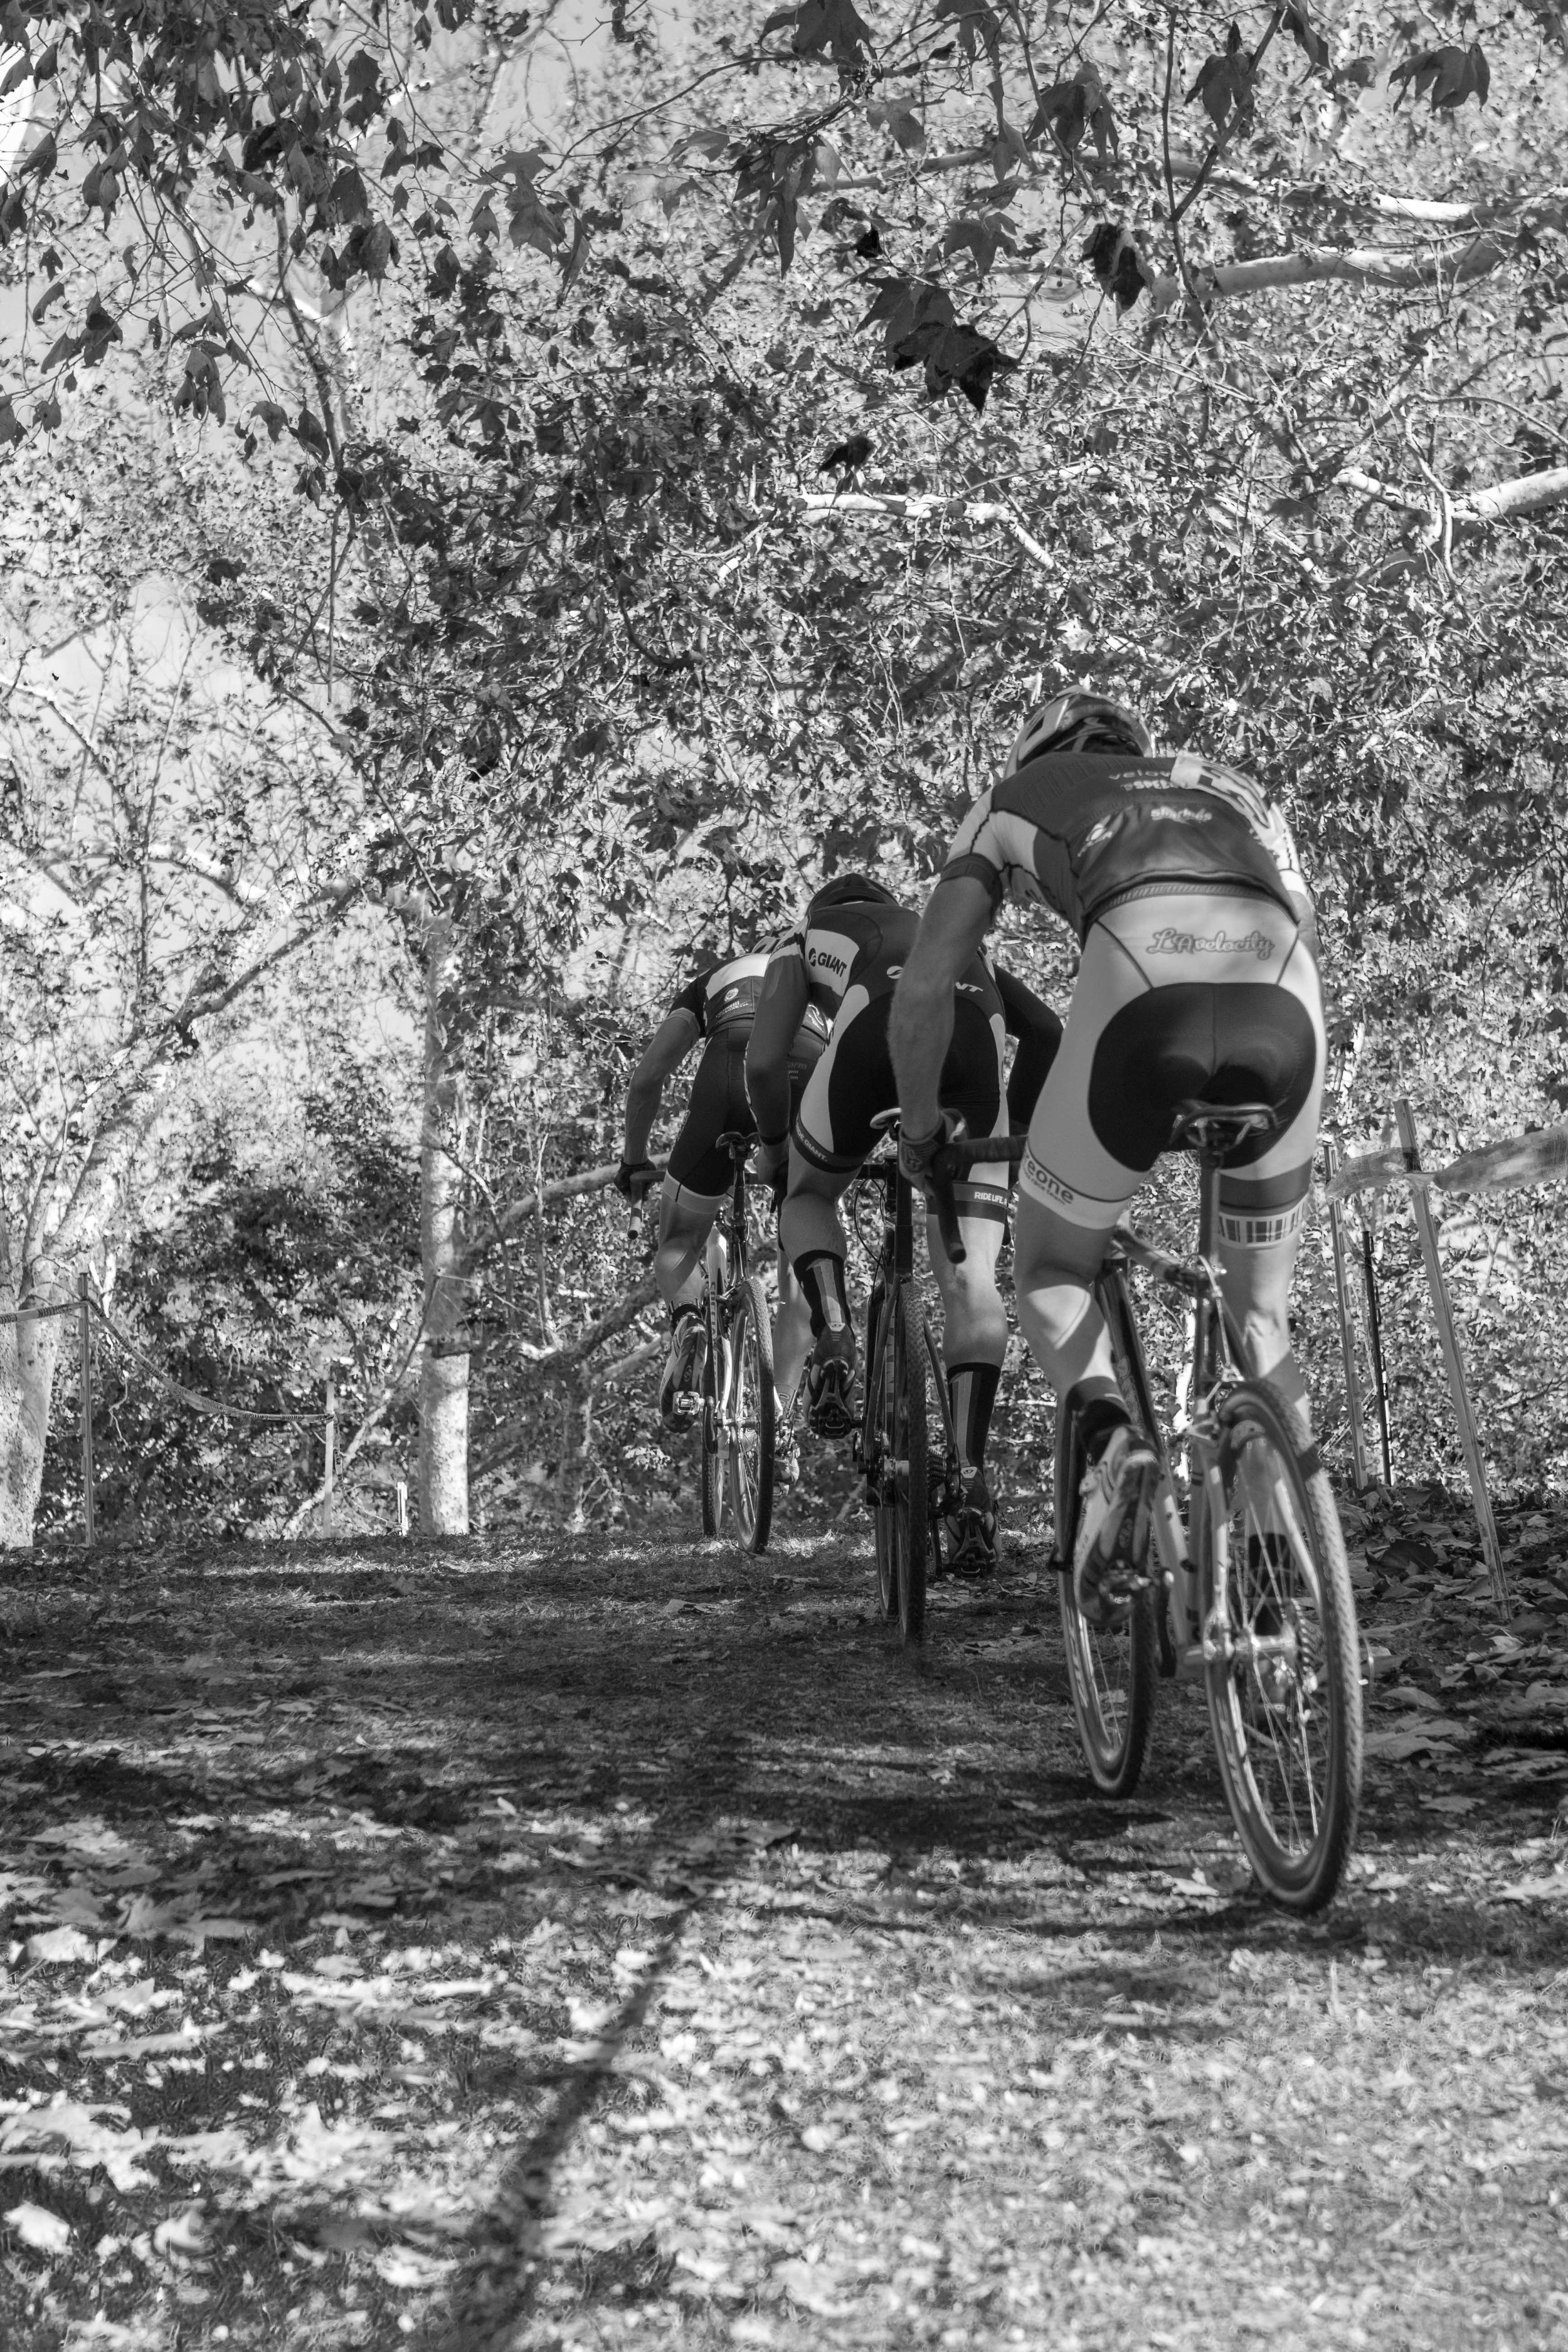 8. Riders hammer up the hill at Turkey Trot Cross.